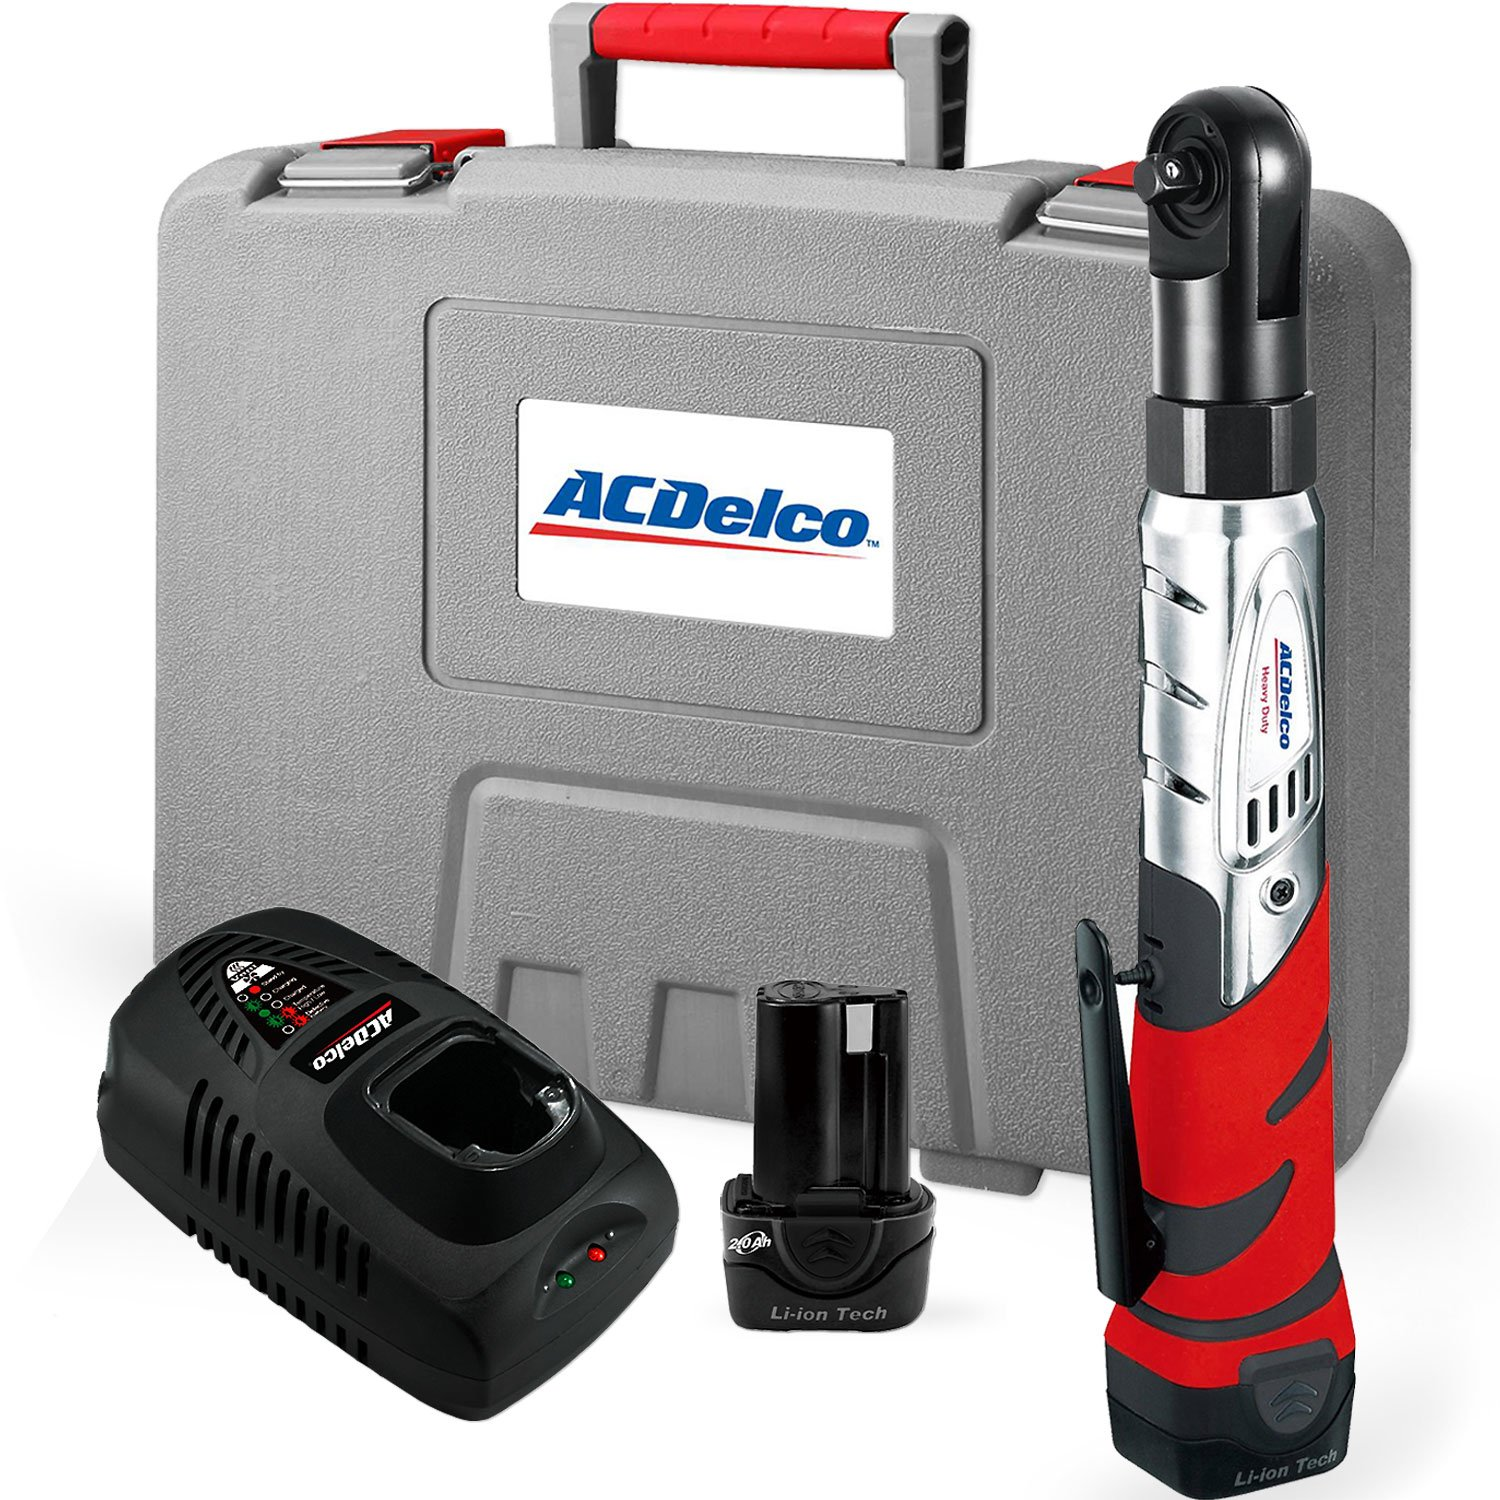 #2 - ACDelco Cordless 12V Heavy Duty 3/8 Ratchet Wrench Tool Set with 2 Li-ion Batteries and Charger Kit, ARW1201